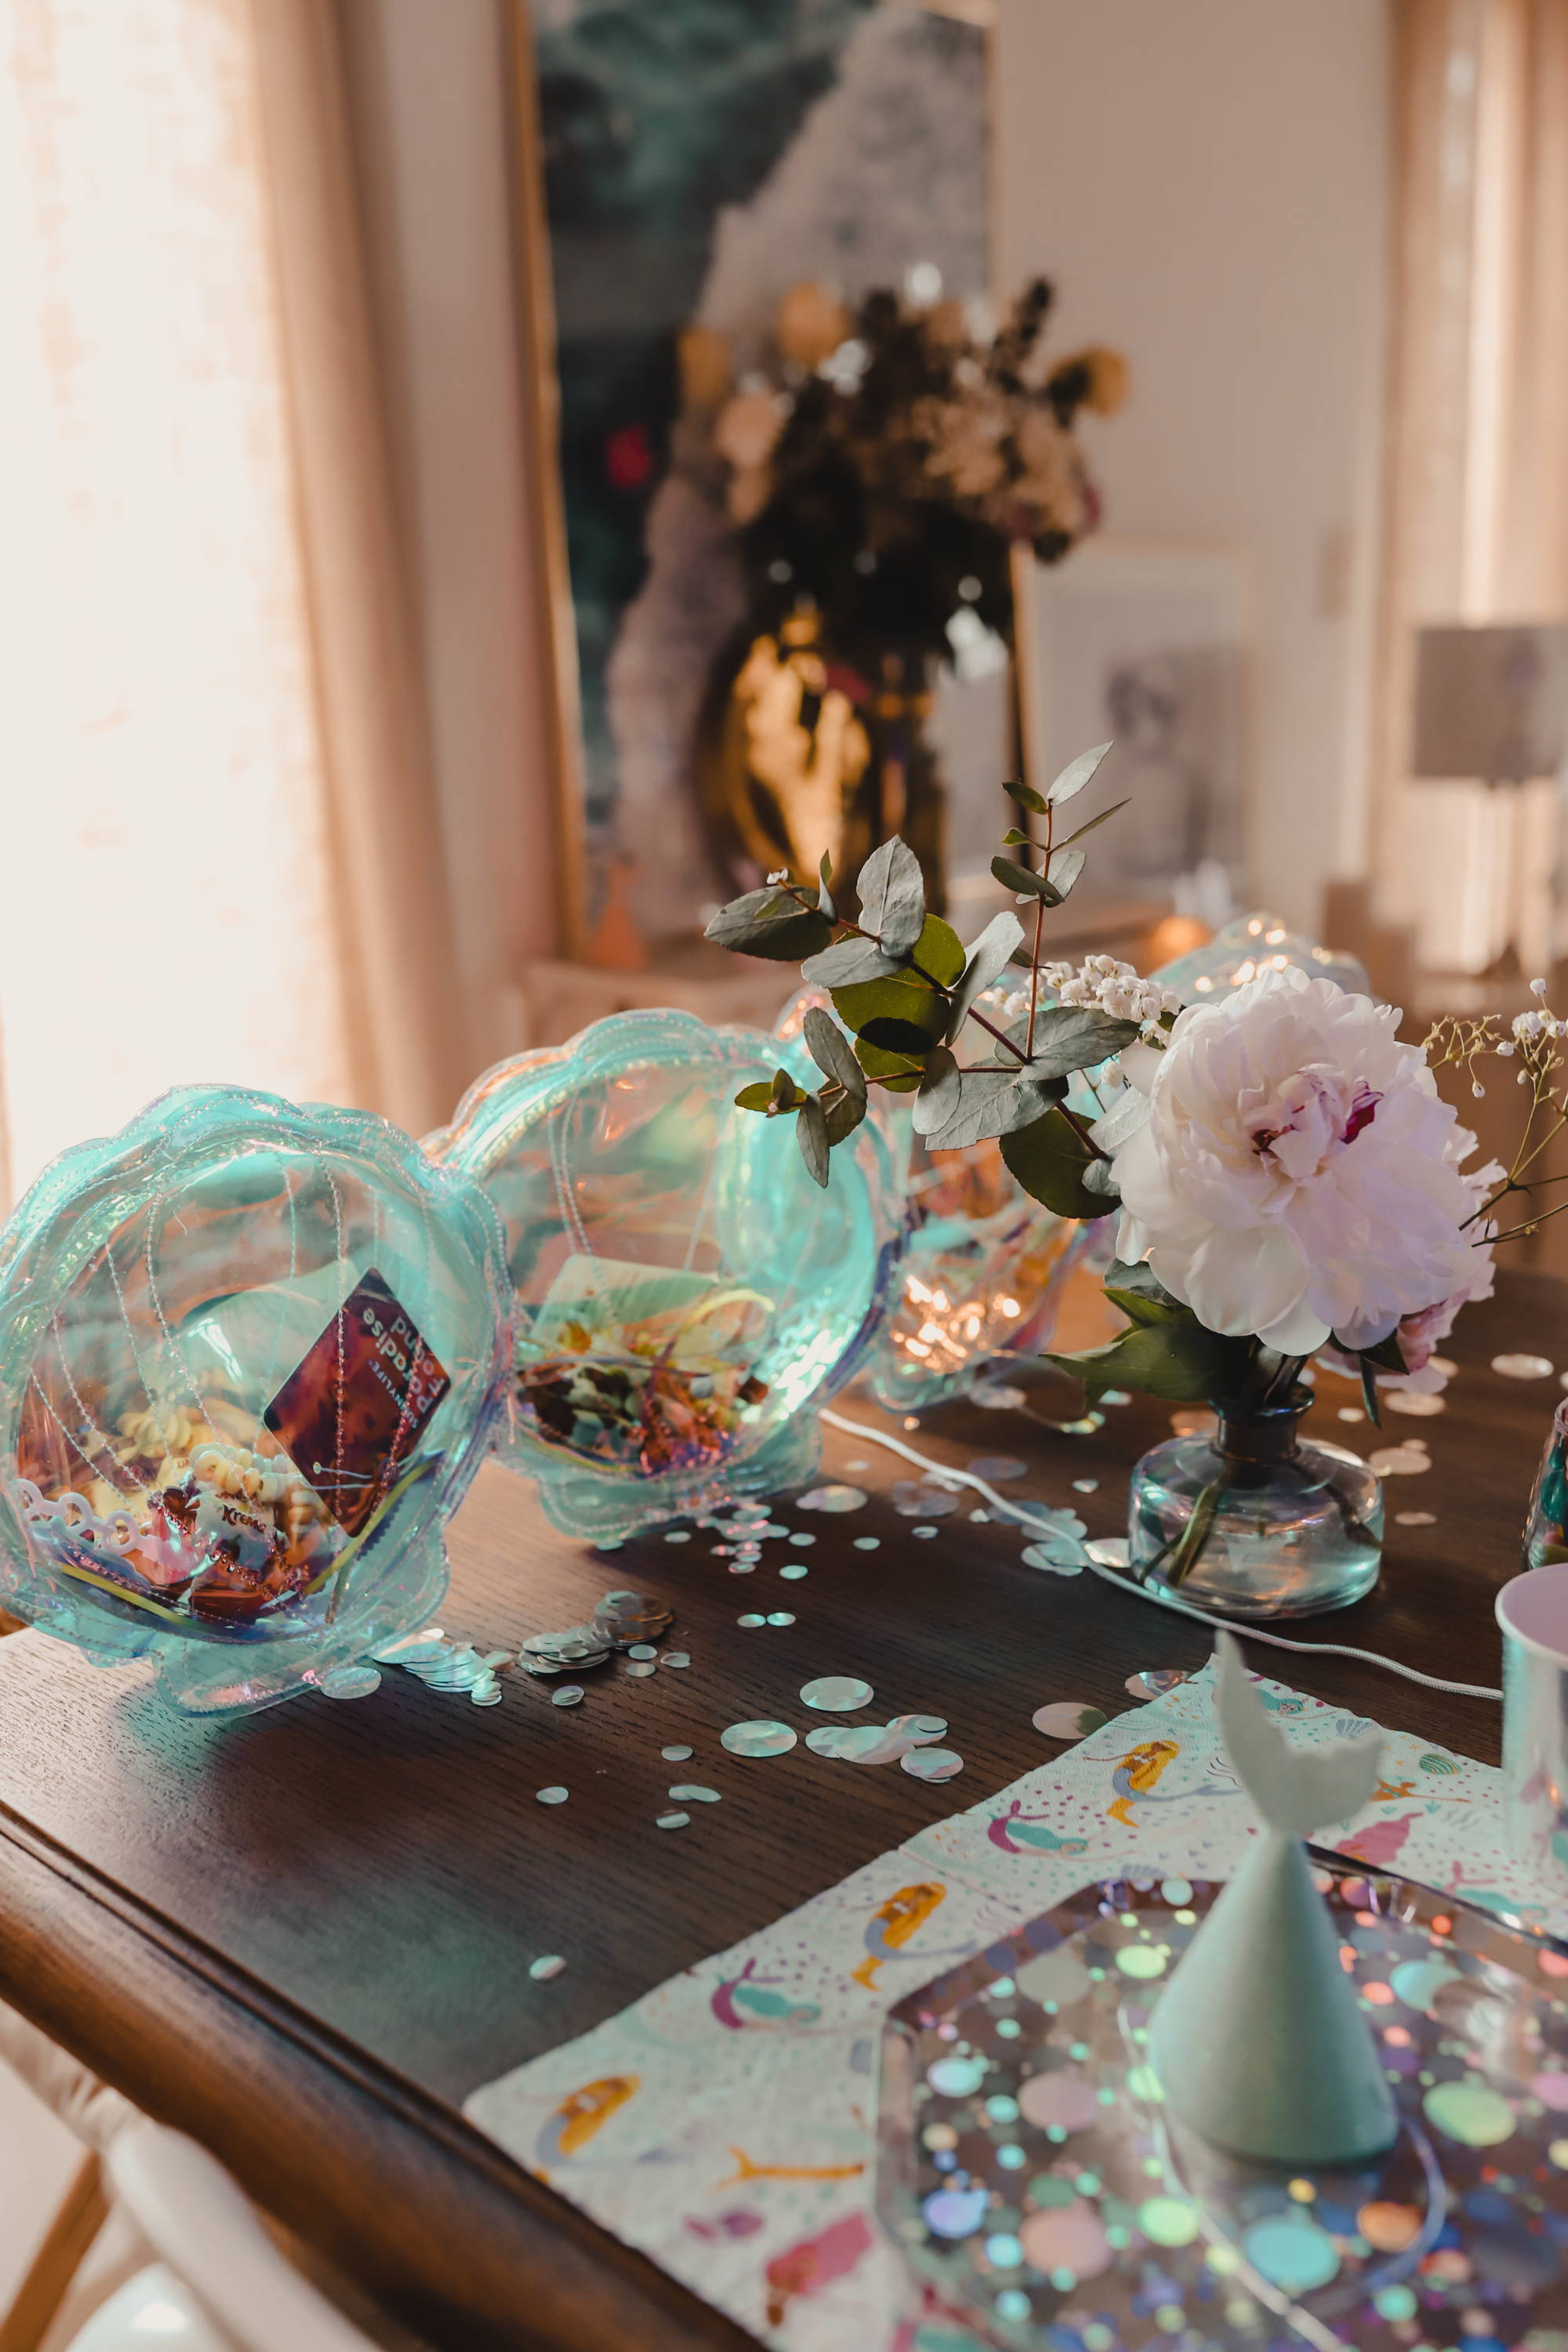 Make a splash and throw the ultimate mermaid party